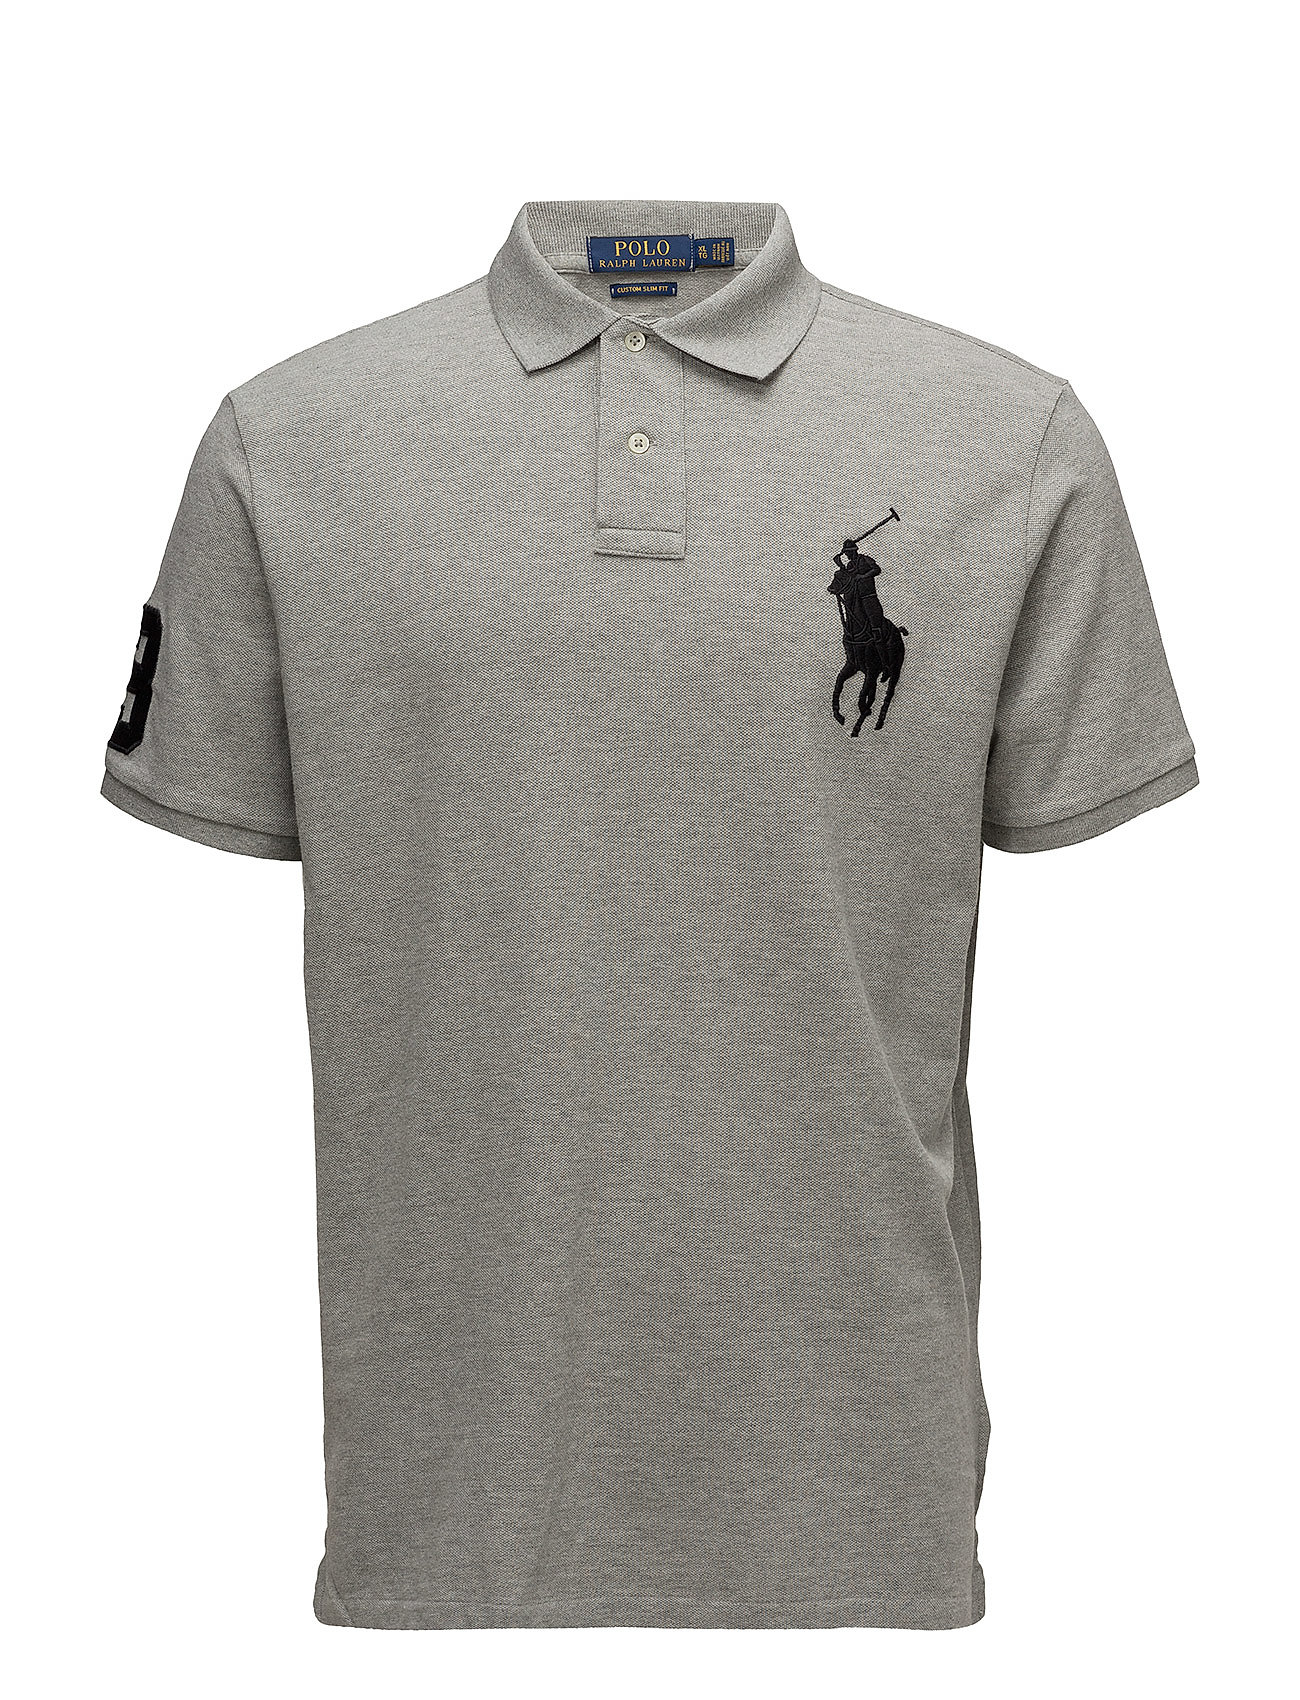 78591b7271c0 Custom Slim Fit Mesh Polo (Andover Heather) (£109) - Polo Ralph ...